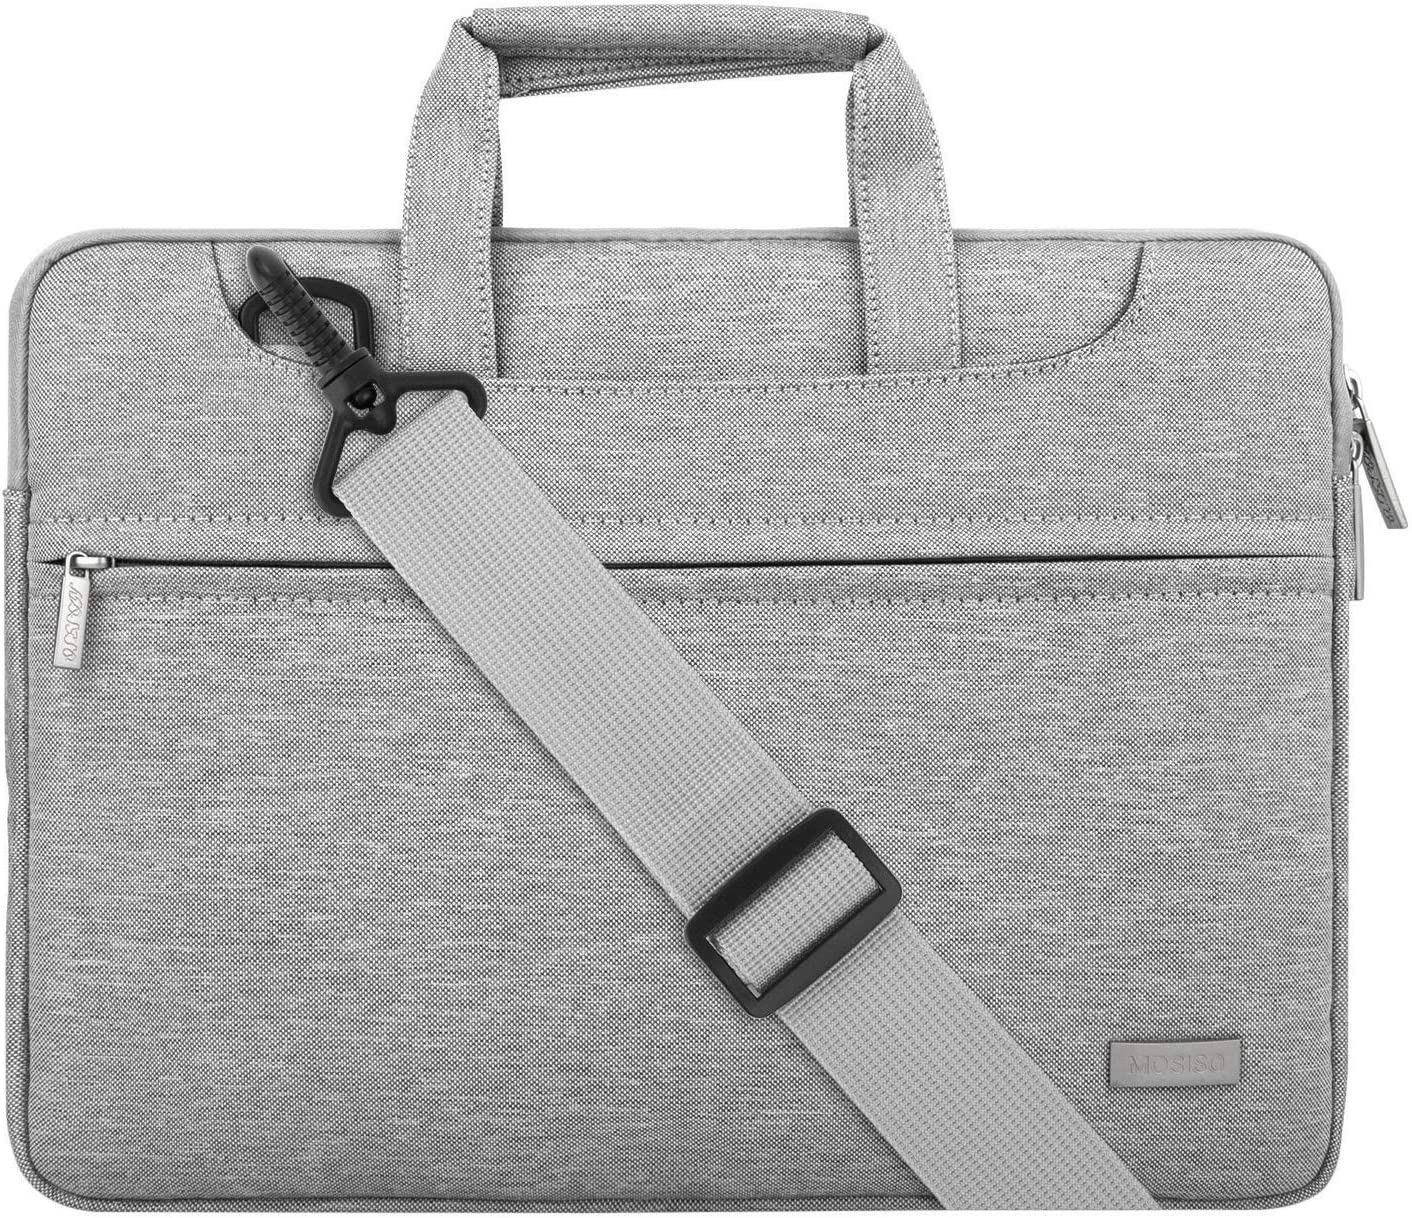 MOSISO Laptop Shoulder Bag Compatible with 13-13.3 inch MacBook Pro, MacBook Air, Notebook Computer, Polyester Sleeve with Back Trolley Belt, Light Gray